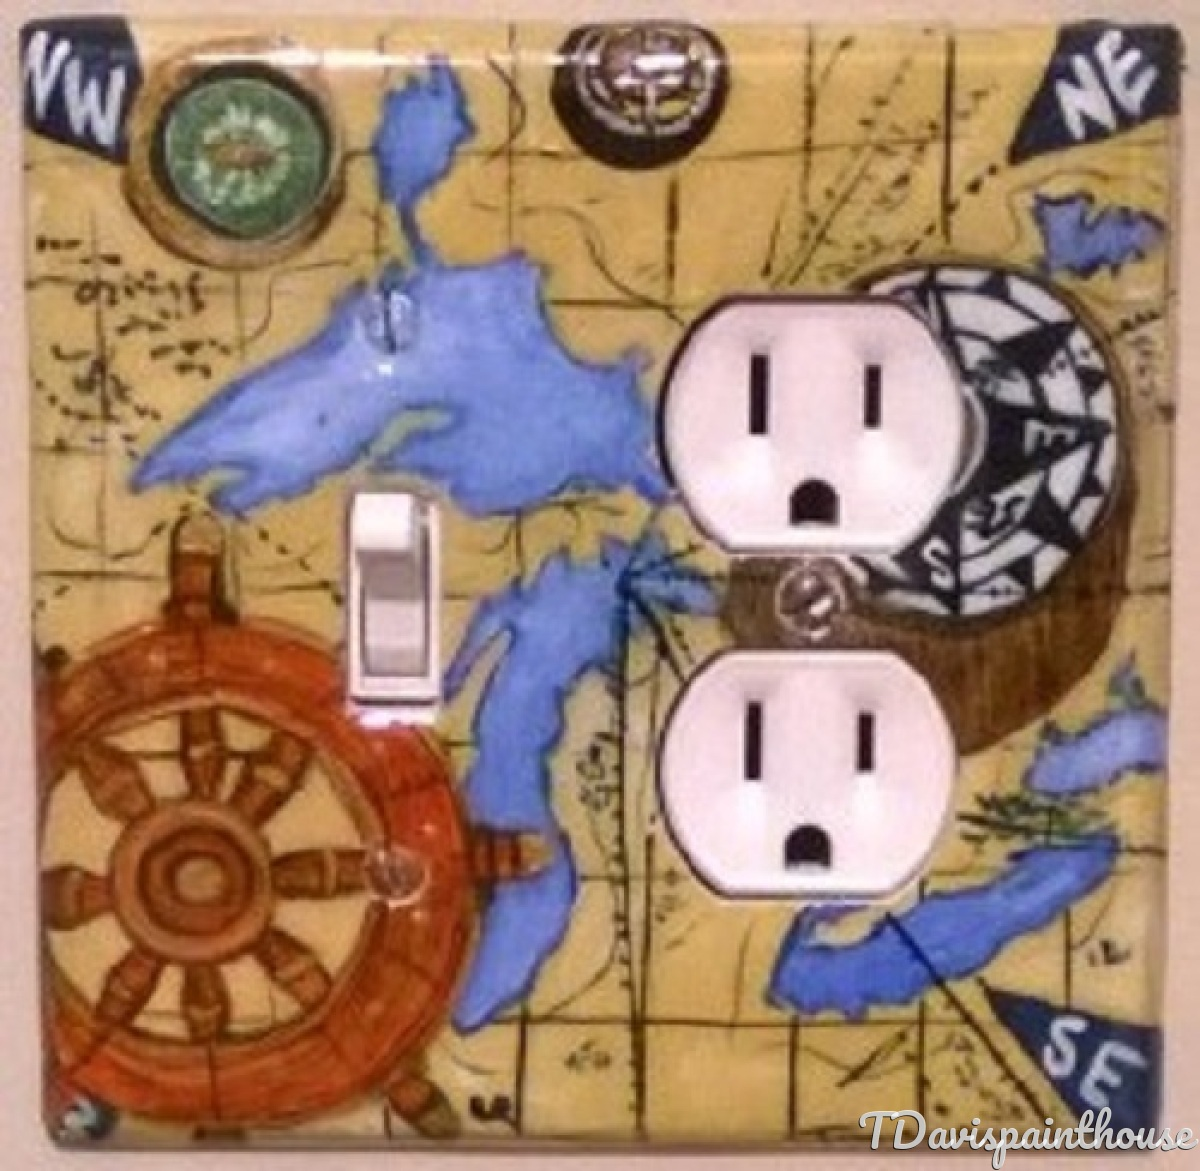 Nautical Coastal Living Home Decor Acrylic Painted Switchplate Covers featuring Great Lakes Nautical Charting Map with Ships wheel and compasses. (large view)